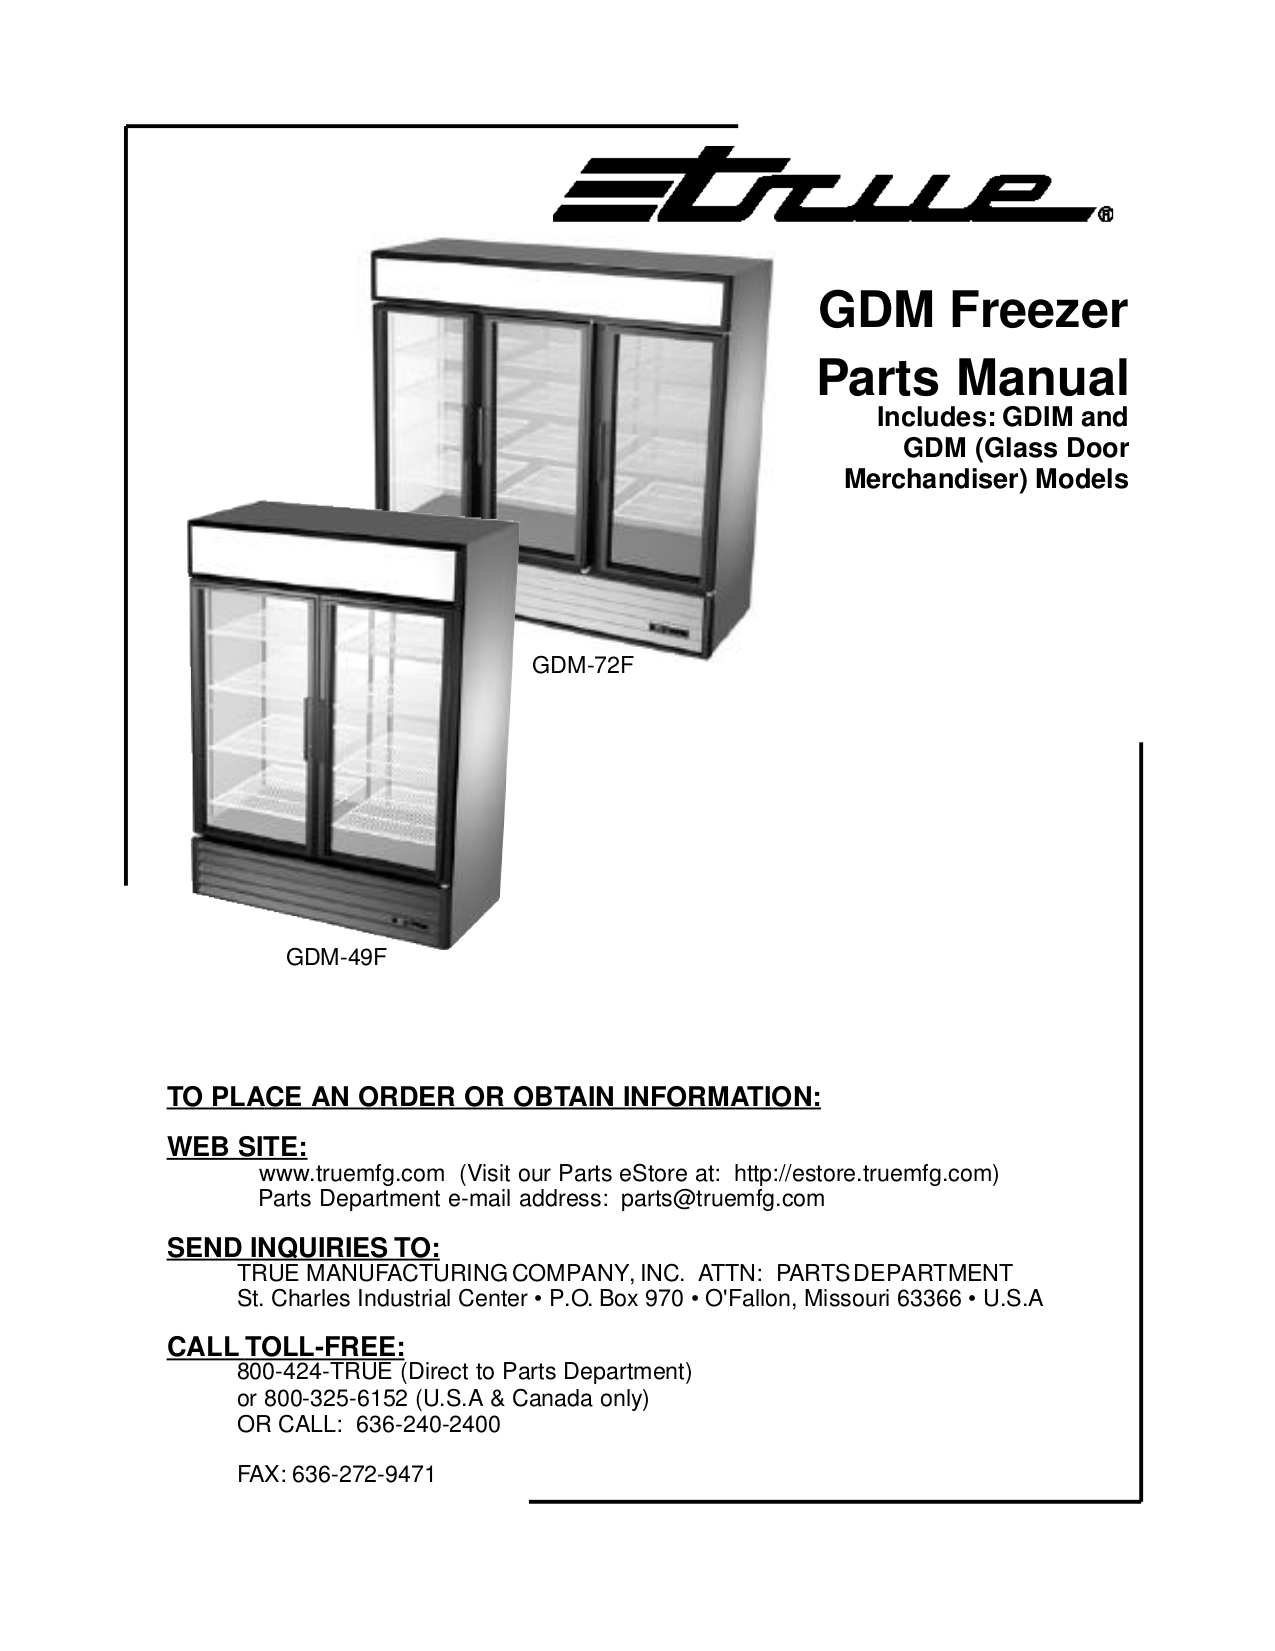 PI6DF1~1.PDF 0 download free pdf for true gdm 26 refrigerator manual true gdm 72f wiring diagram at fashall.co